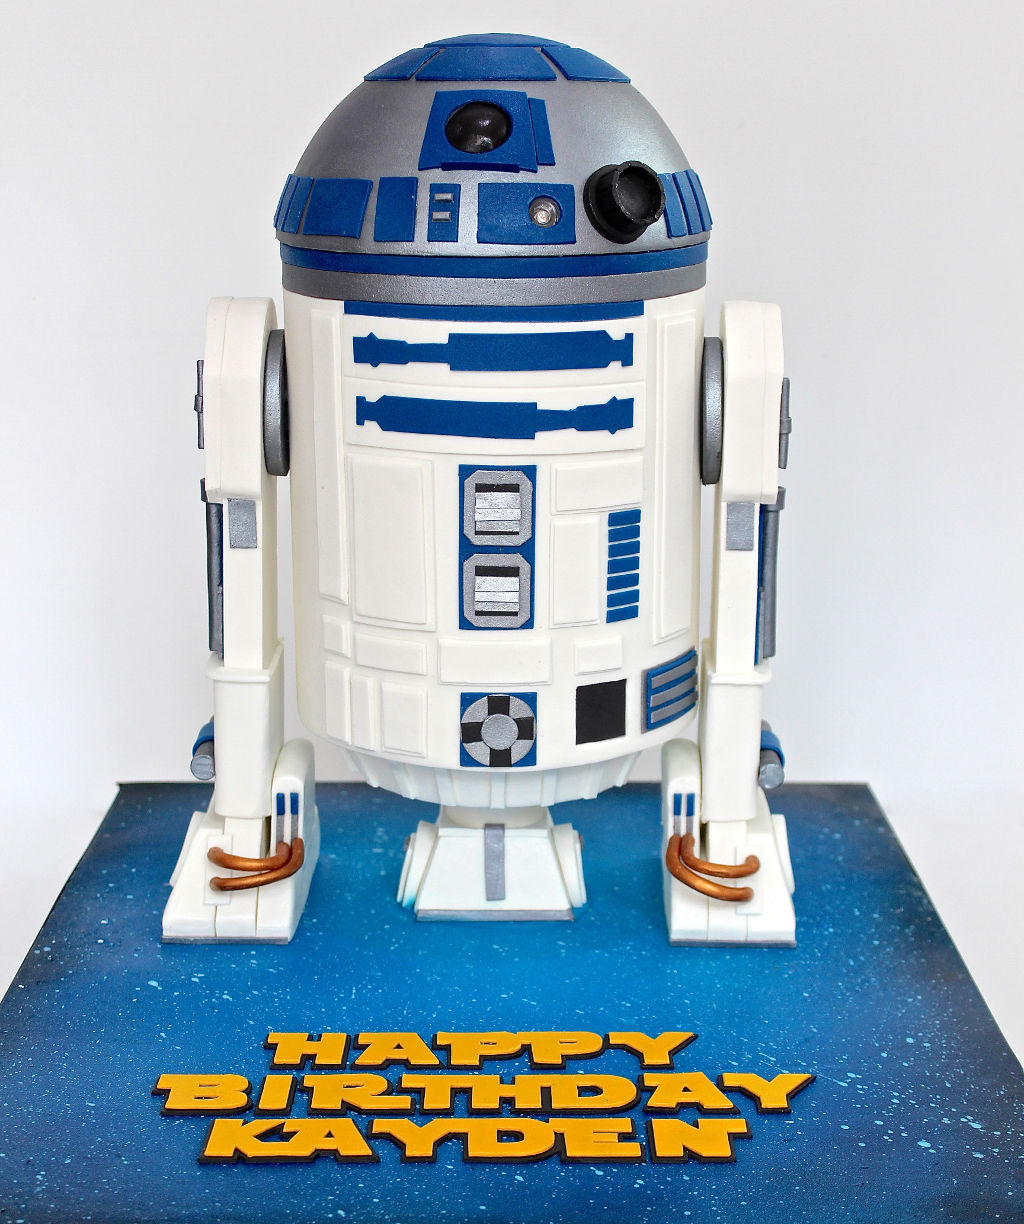 Kid's birthday Cake - R2D2 cake from Celebrate with Cake!